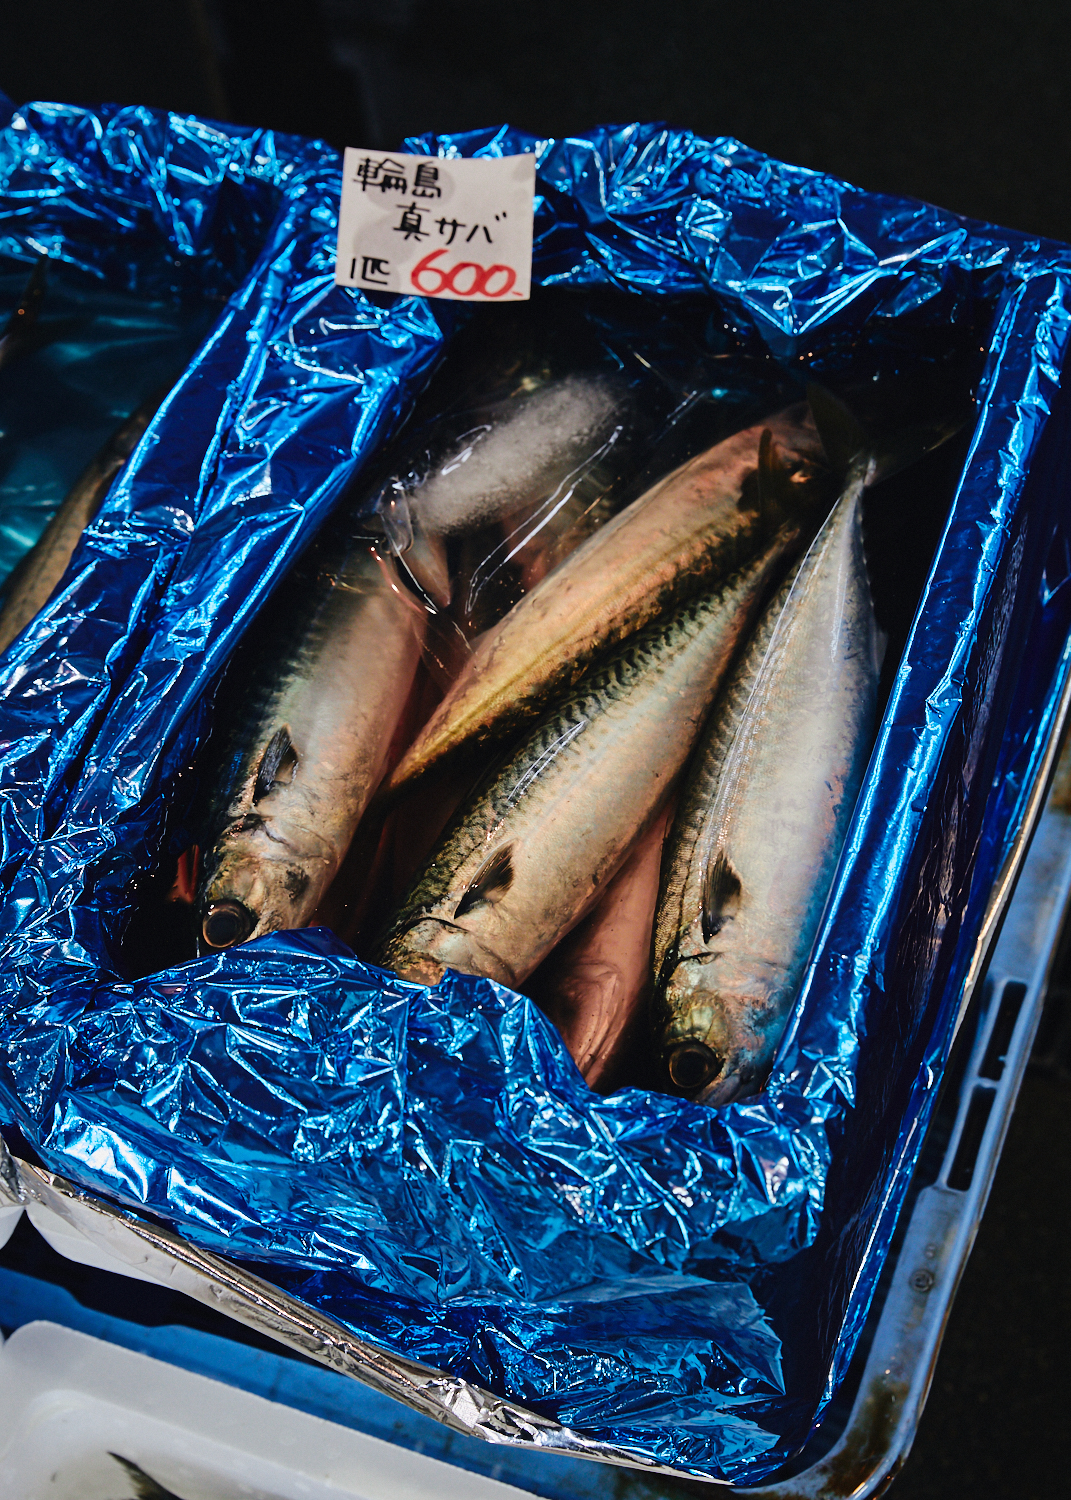 Fish for sale at Iki Iki Market in Ono Port, Kanazawa, Japan